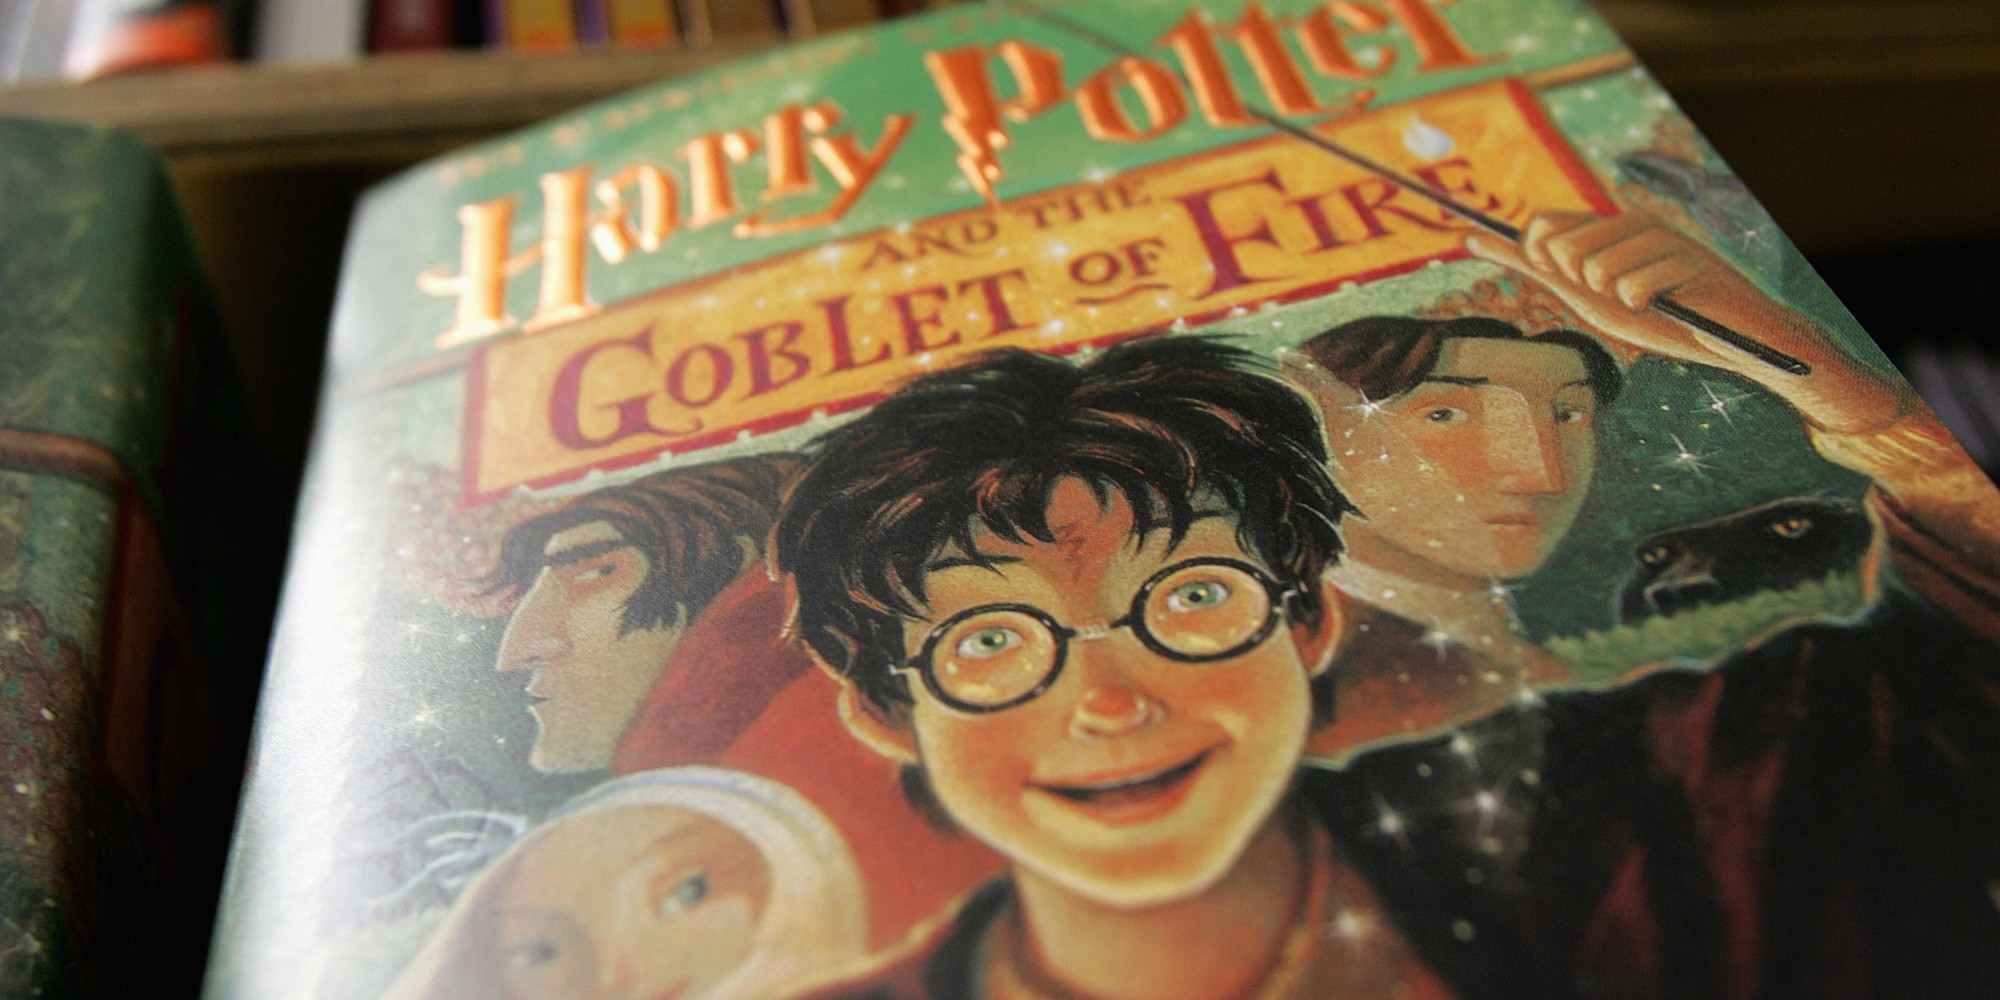 Harry Potter Book Facebook Cover : How to snog without getting hogwarts boston university